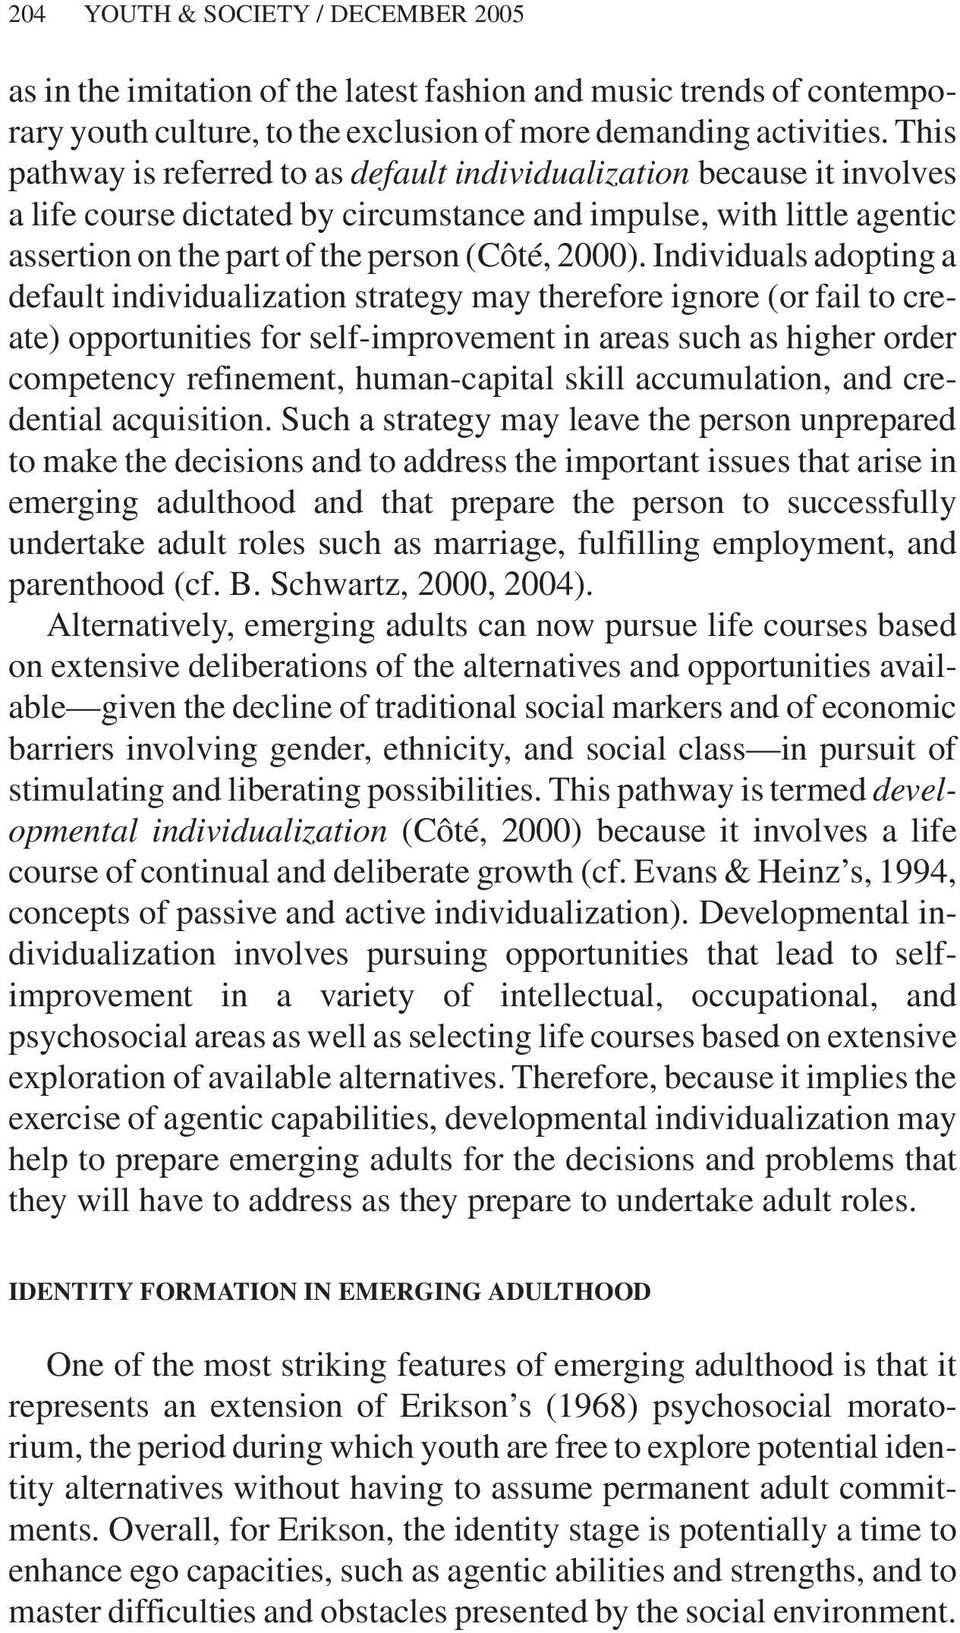 Individuals adopting a default individualization strategy may therefore ignore (or fail to create) opportunities for self-improvement in areas such as higher order competency refinement,